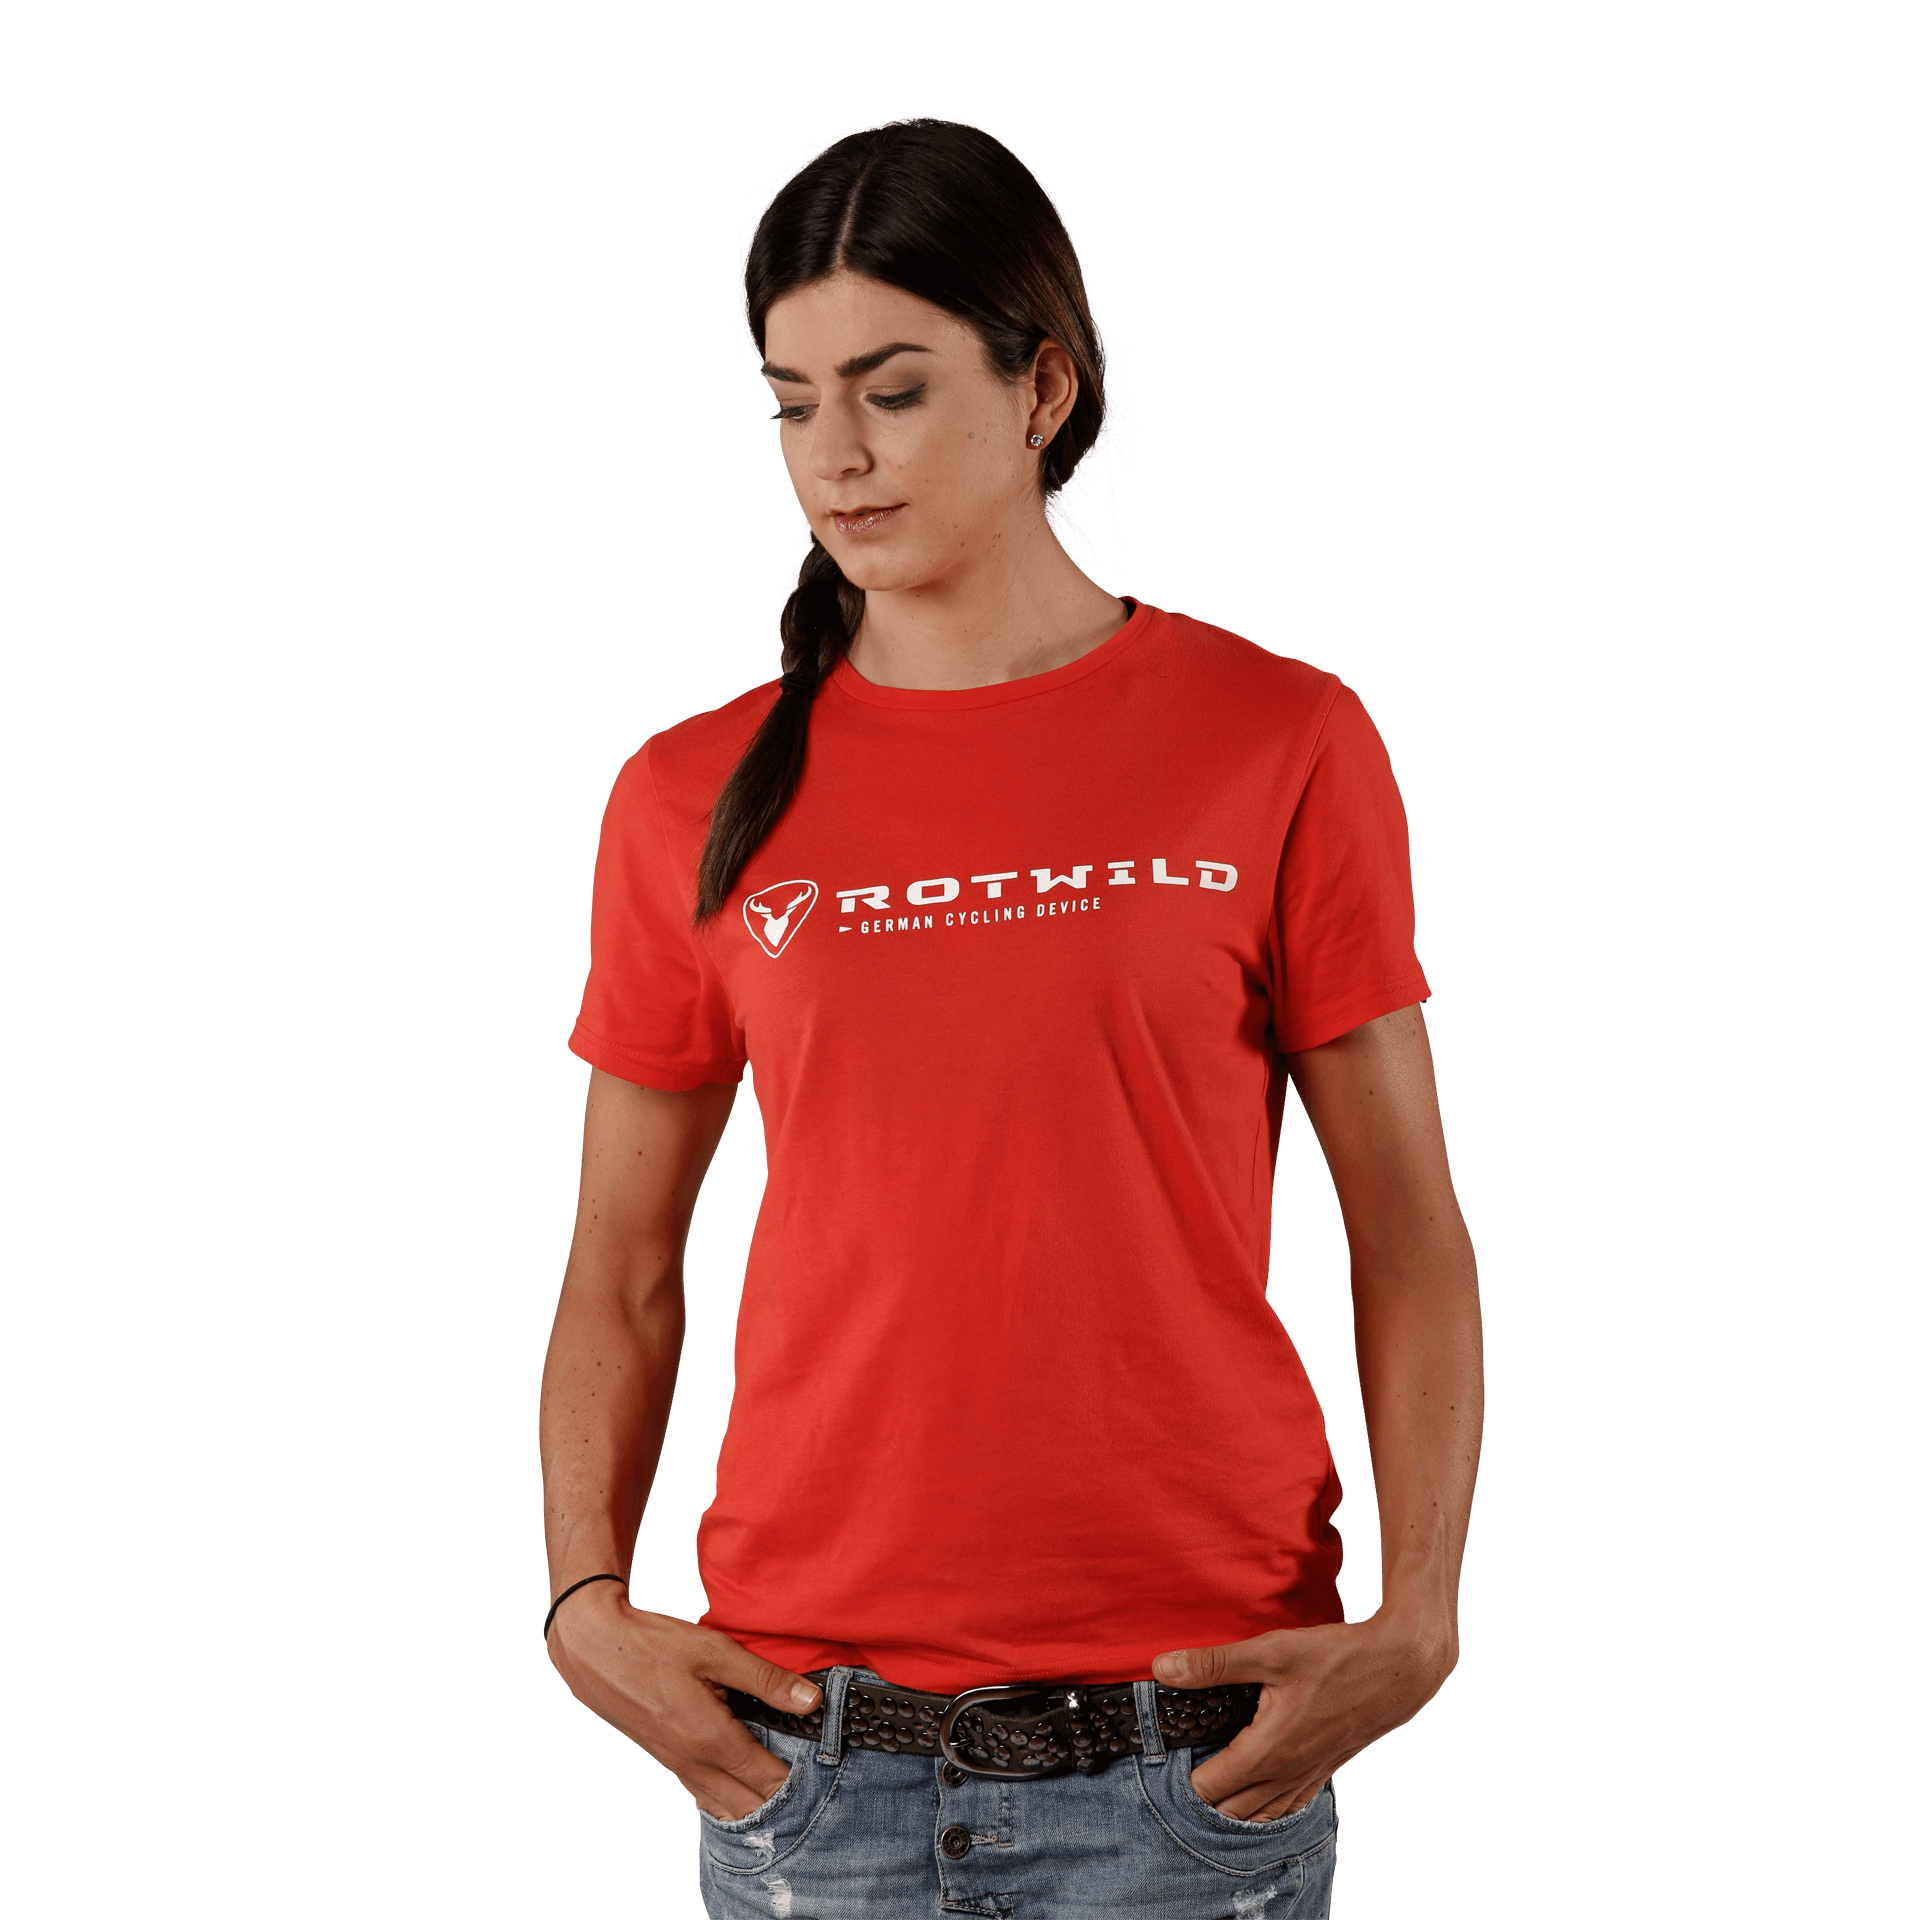 RCD FUNCTIONAL TEE, HOT RED - hot red - XXL - RCD FUNCTIONAL TEE, HOT RED - hot red - XXL